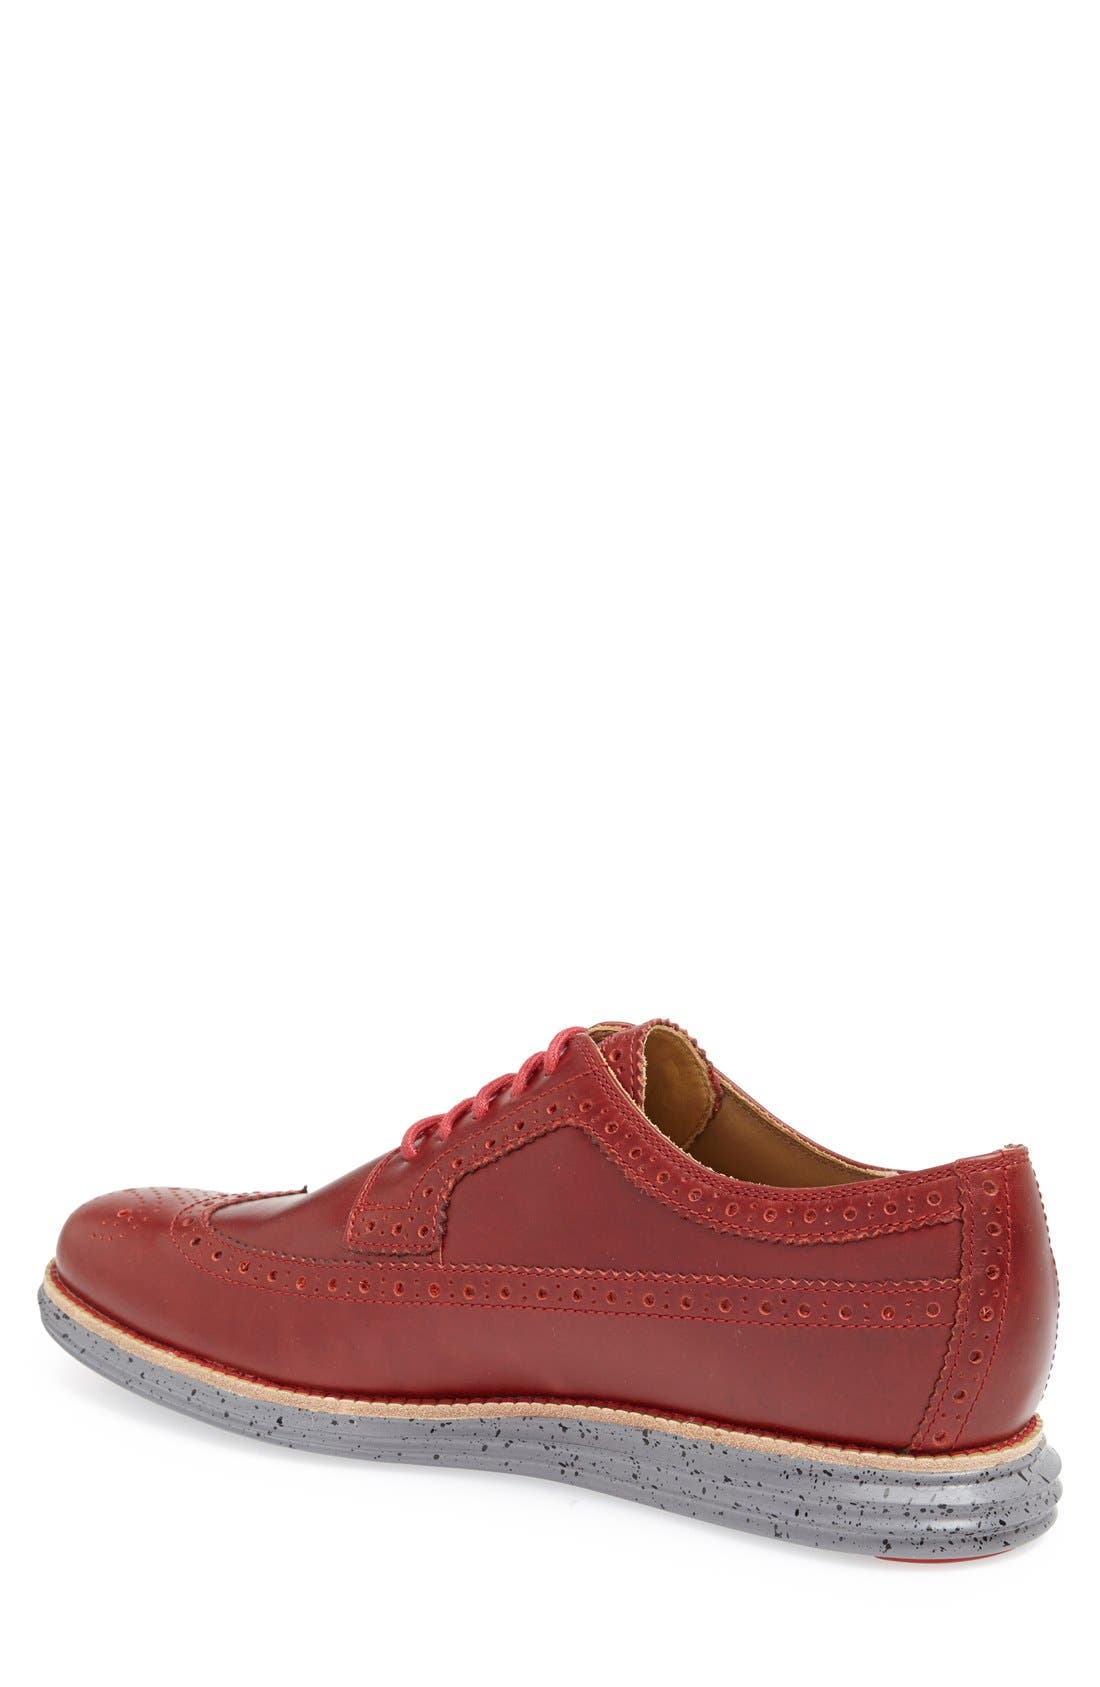 Alternate Image 2  - Cole Haan 'LunarGrand' Longwing Derby (Men) (Nordstrom Exclusive)